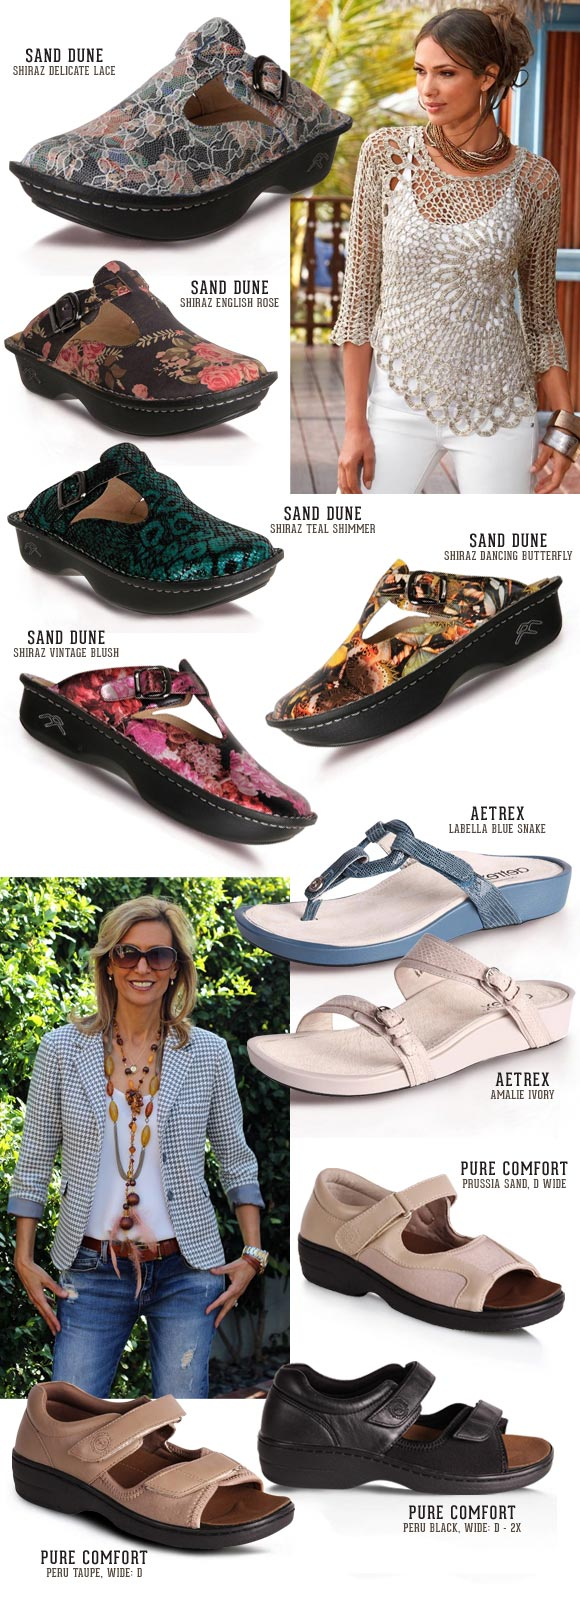 Ladies Orthotic Sandals – With removable foot bed